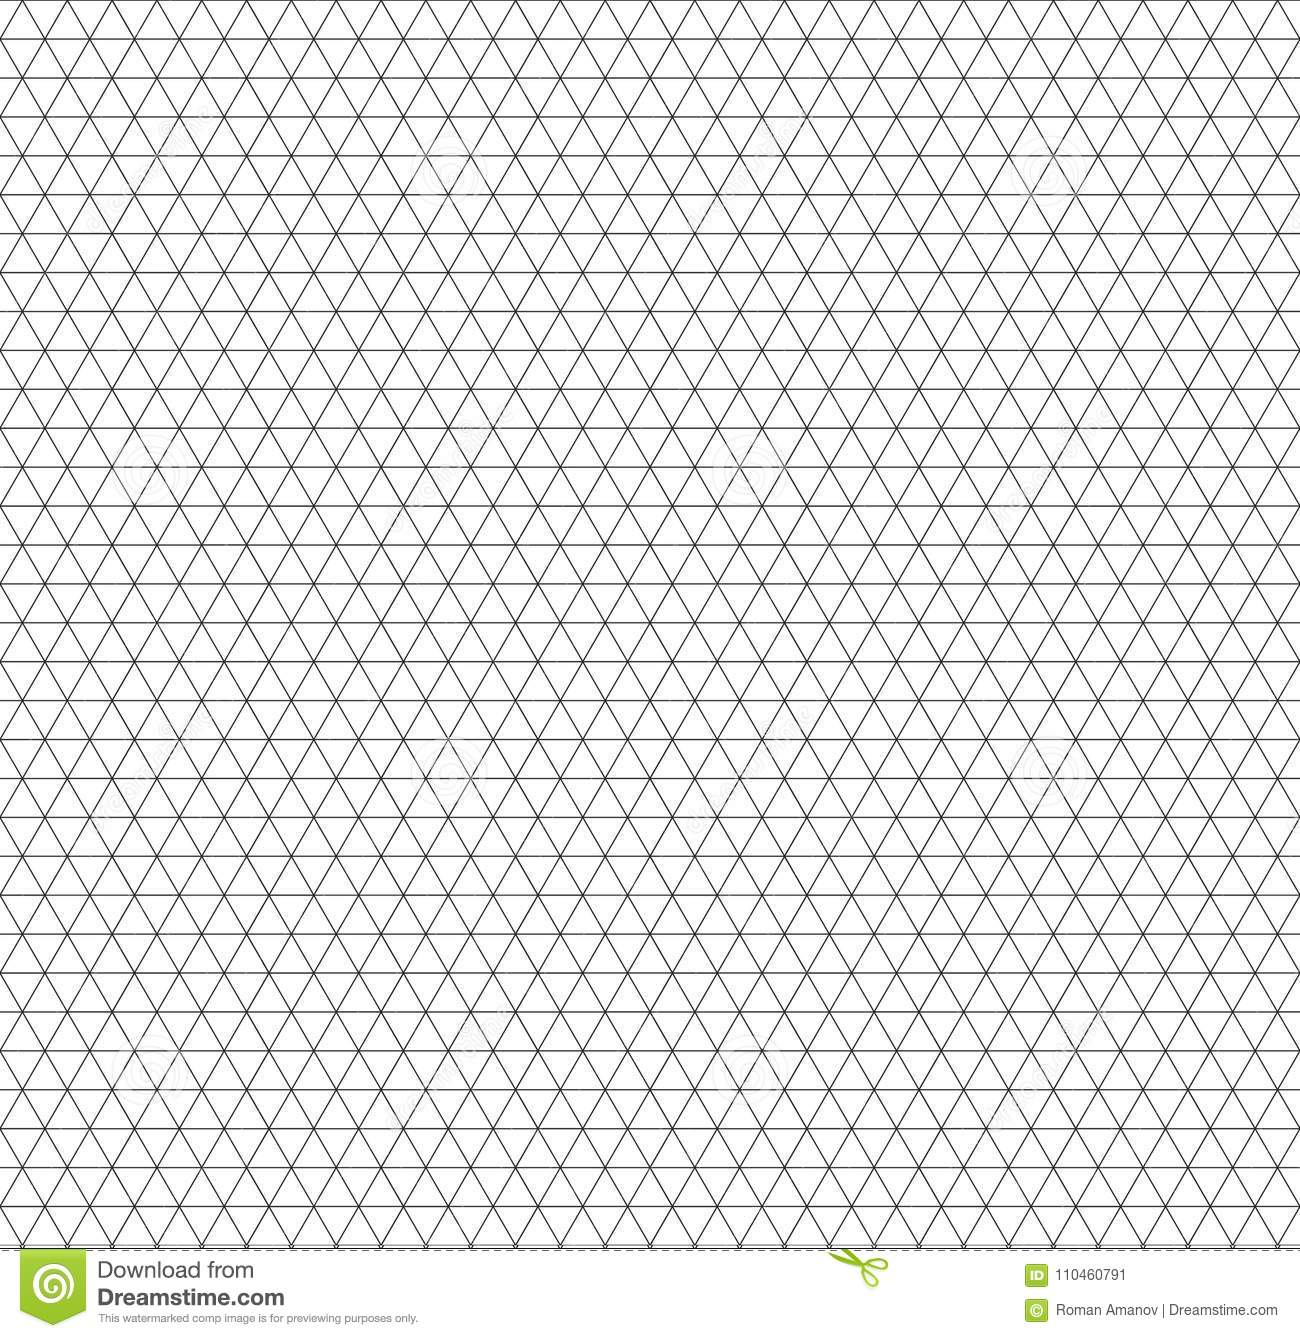 dot paper template - Indiantreasures.us